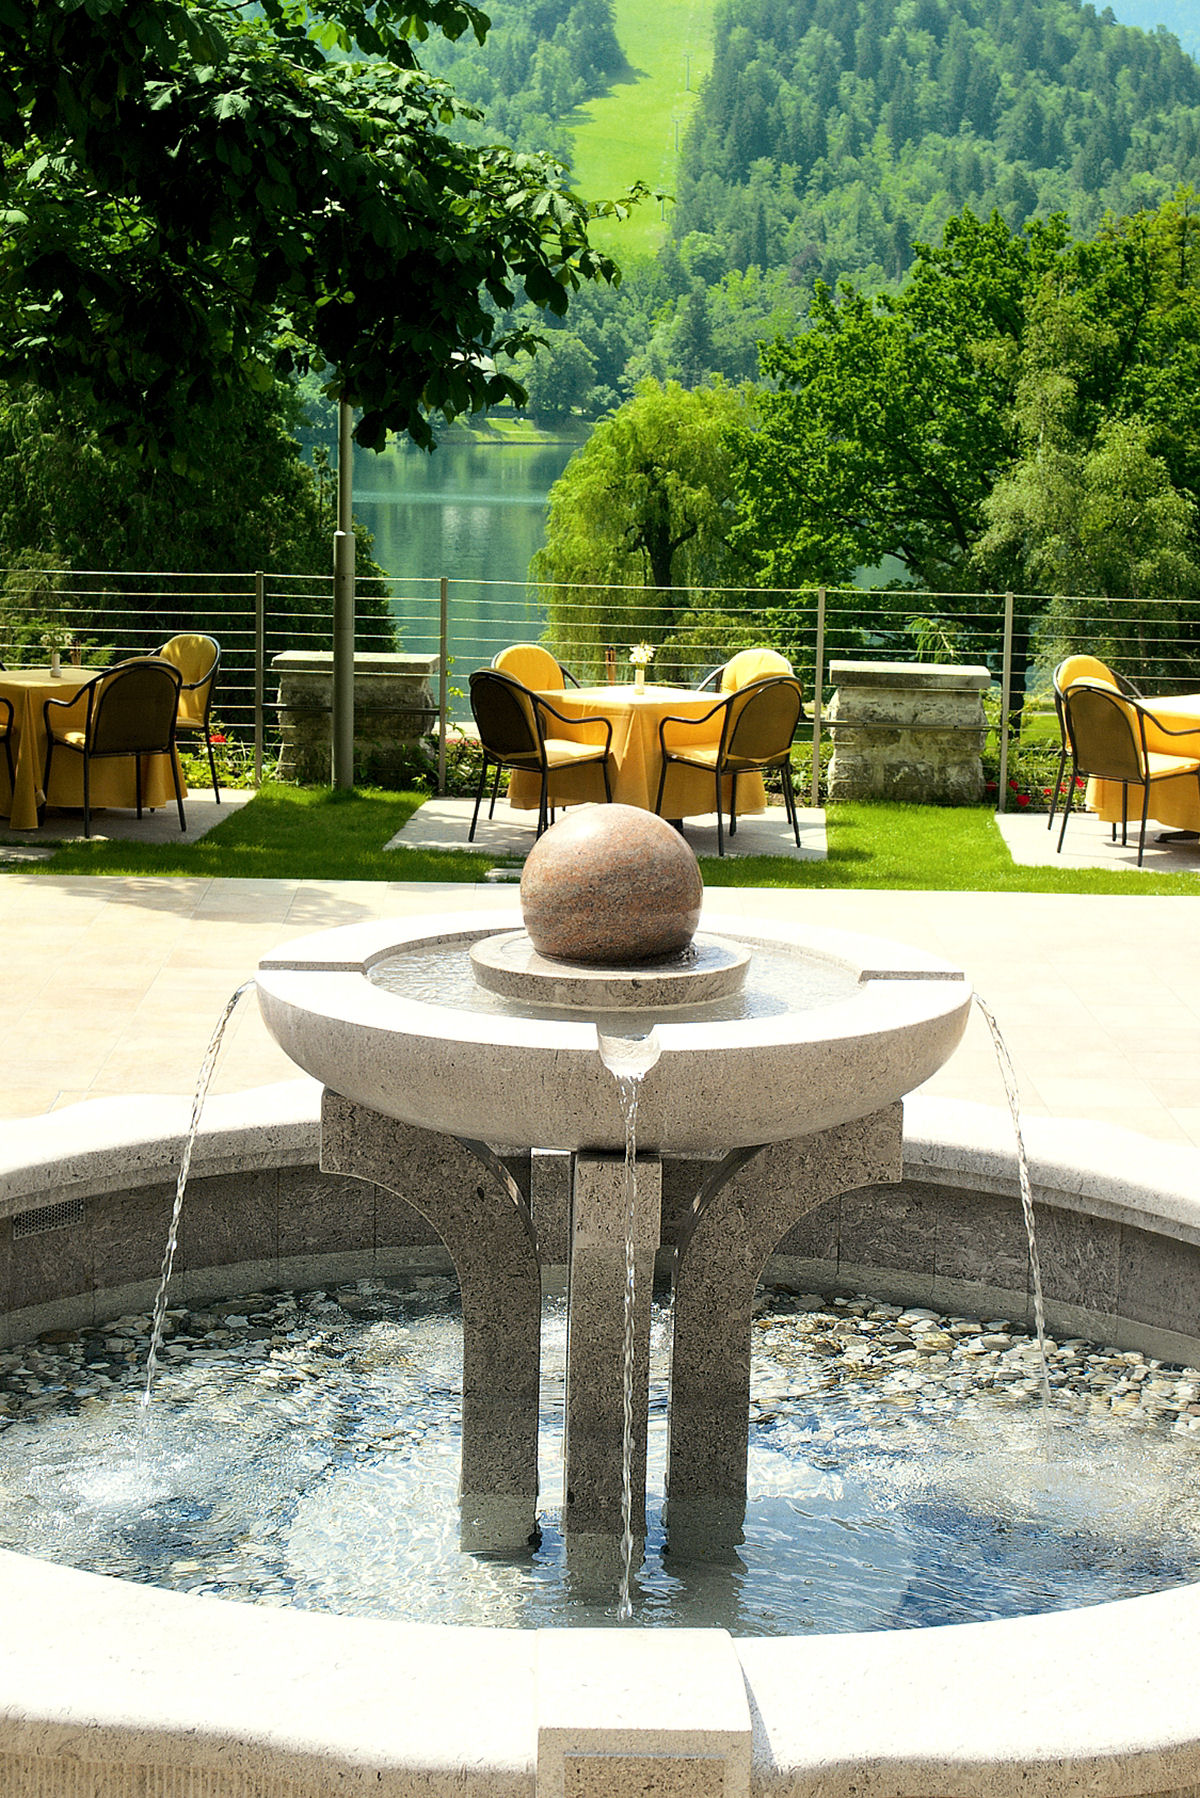 Labod restaurant has a nice garden with fountain and green chestnut trees